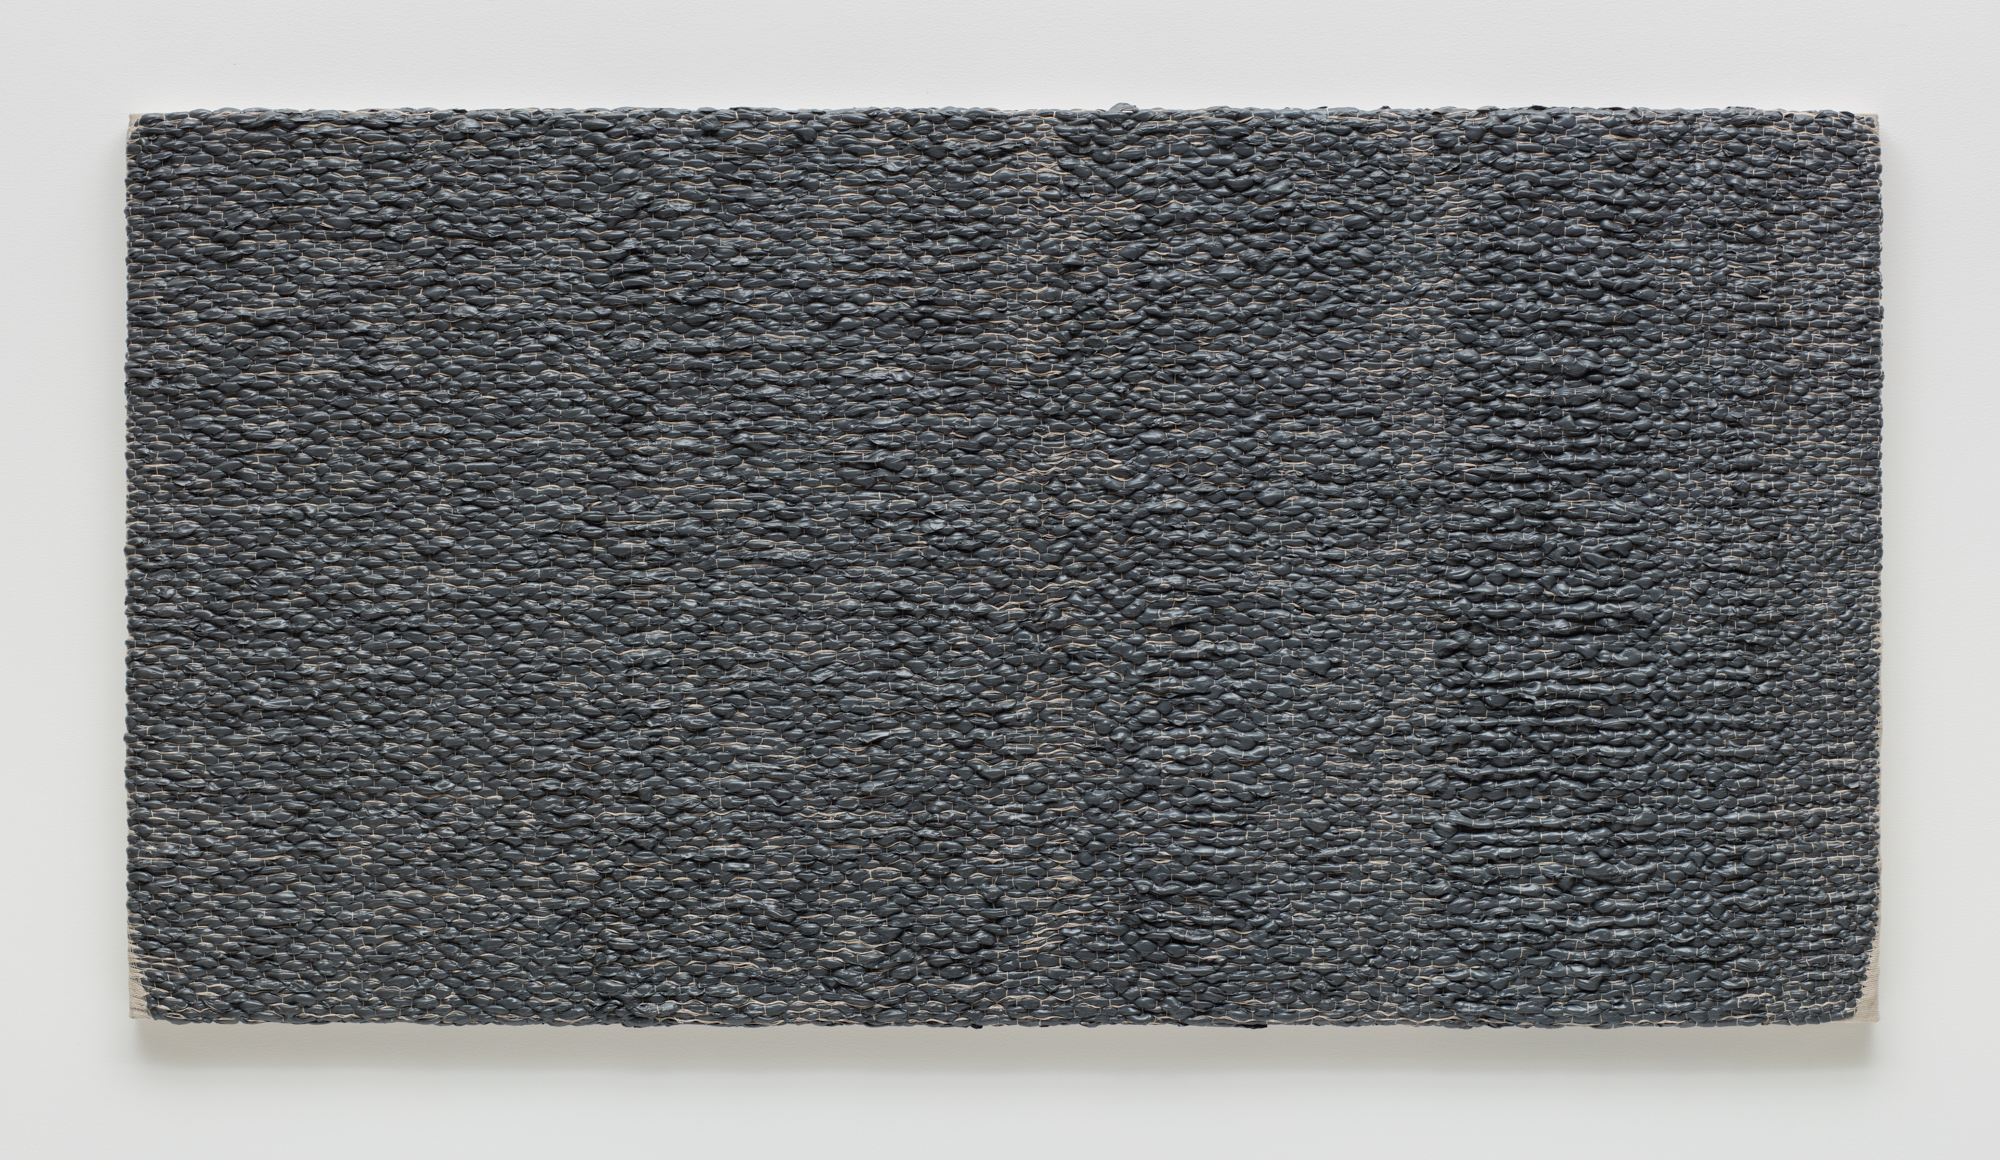 Analia Saban, Woven Solid as Warp, Horizontal (Gray) #1, 2017.  Acrylic paint woven through linen canvas on panel.  202.6 x 106 x 6.4 cm. Photo by Brian Forrest.